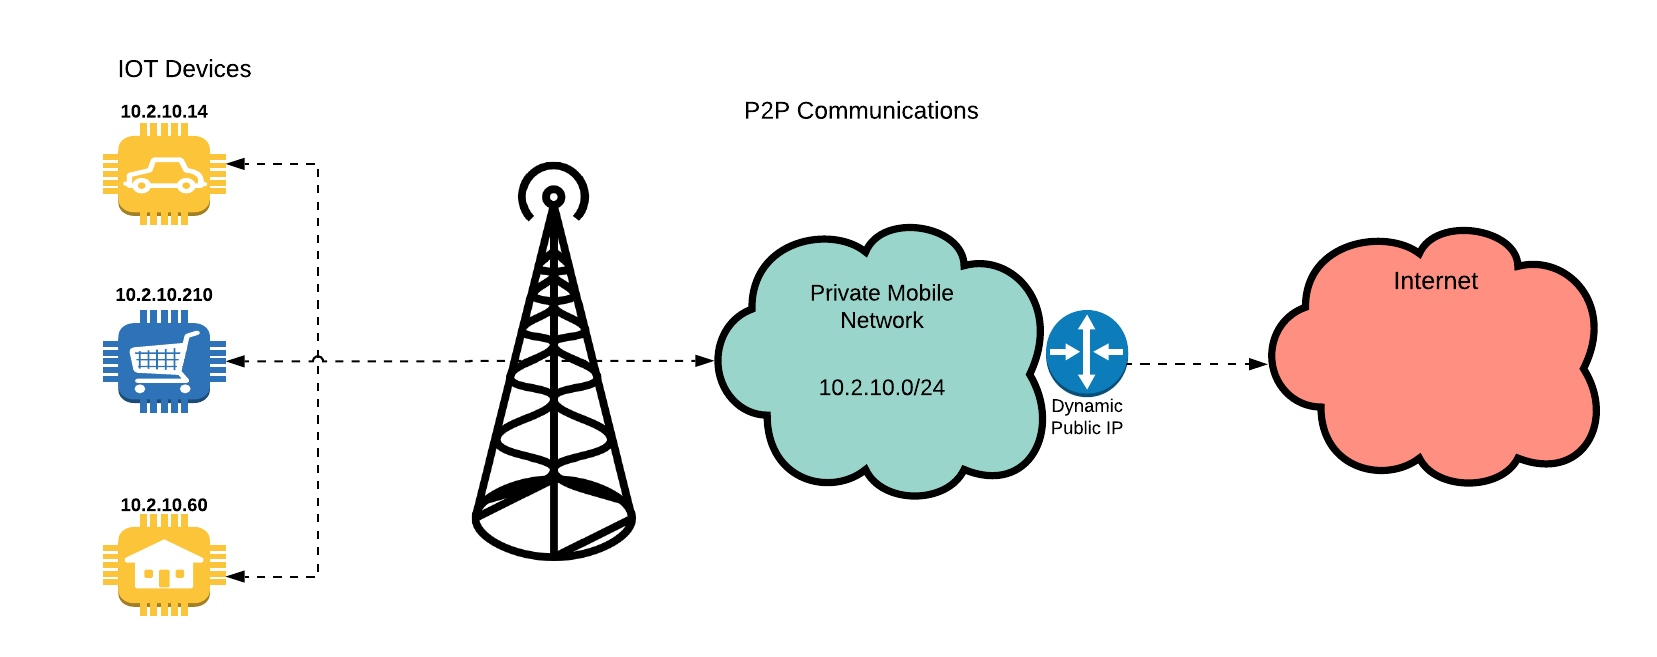 Peer to Peer (P2P) communications for IoT